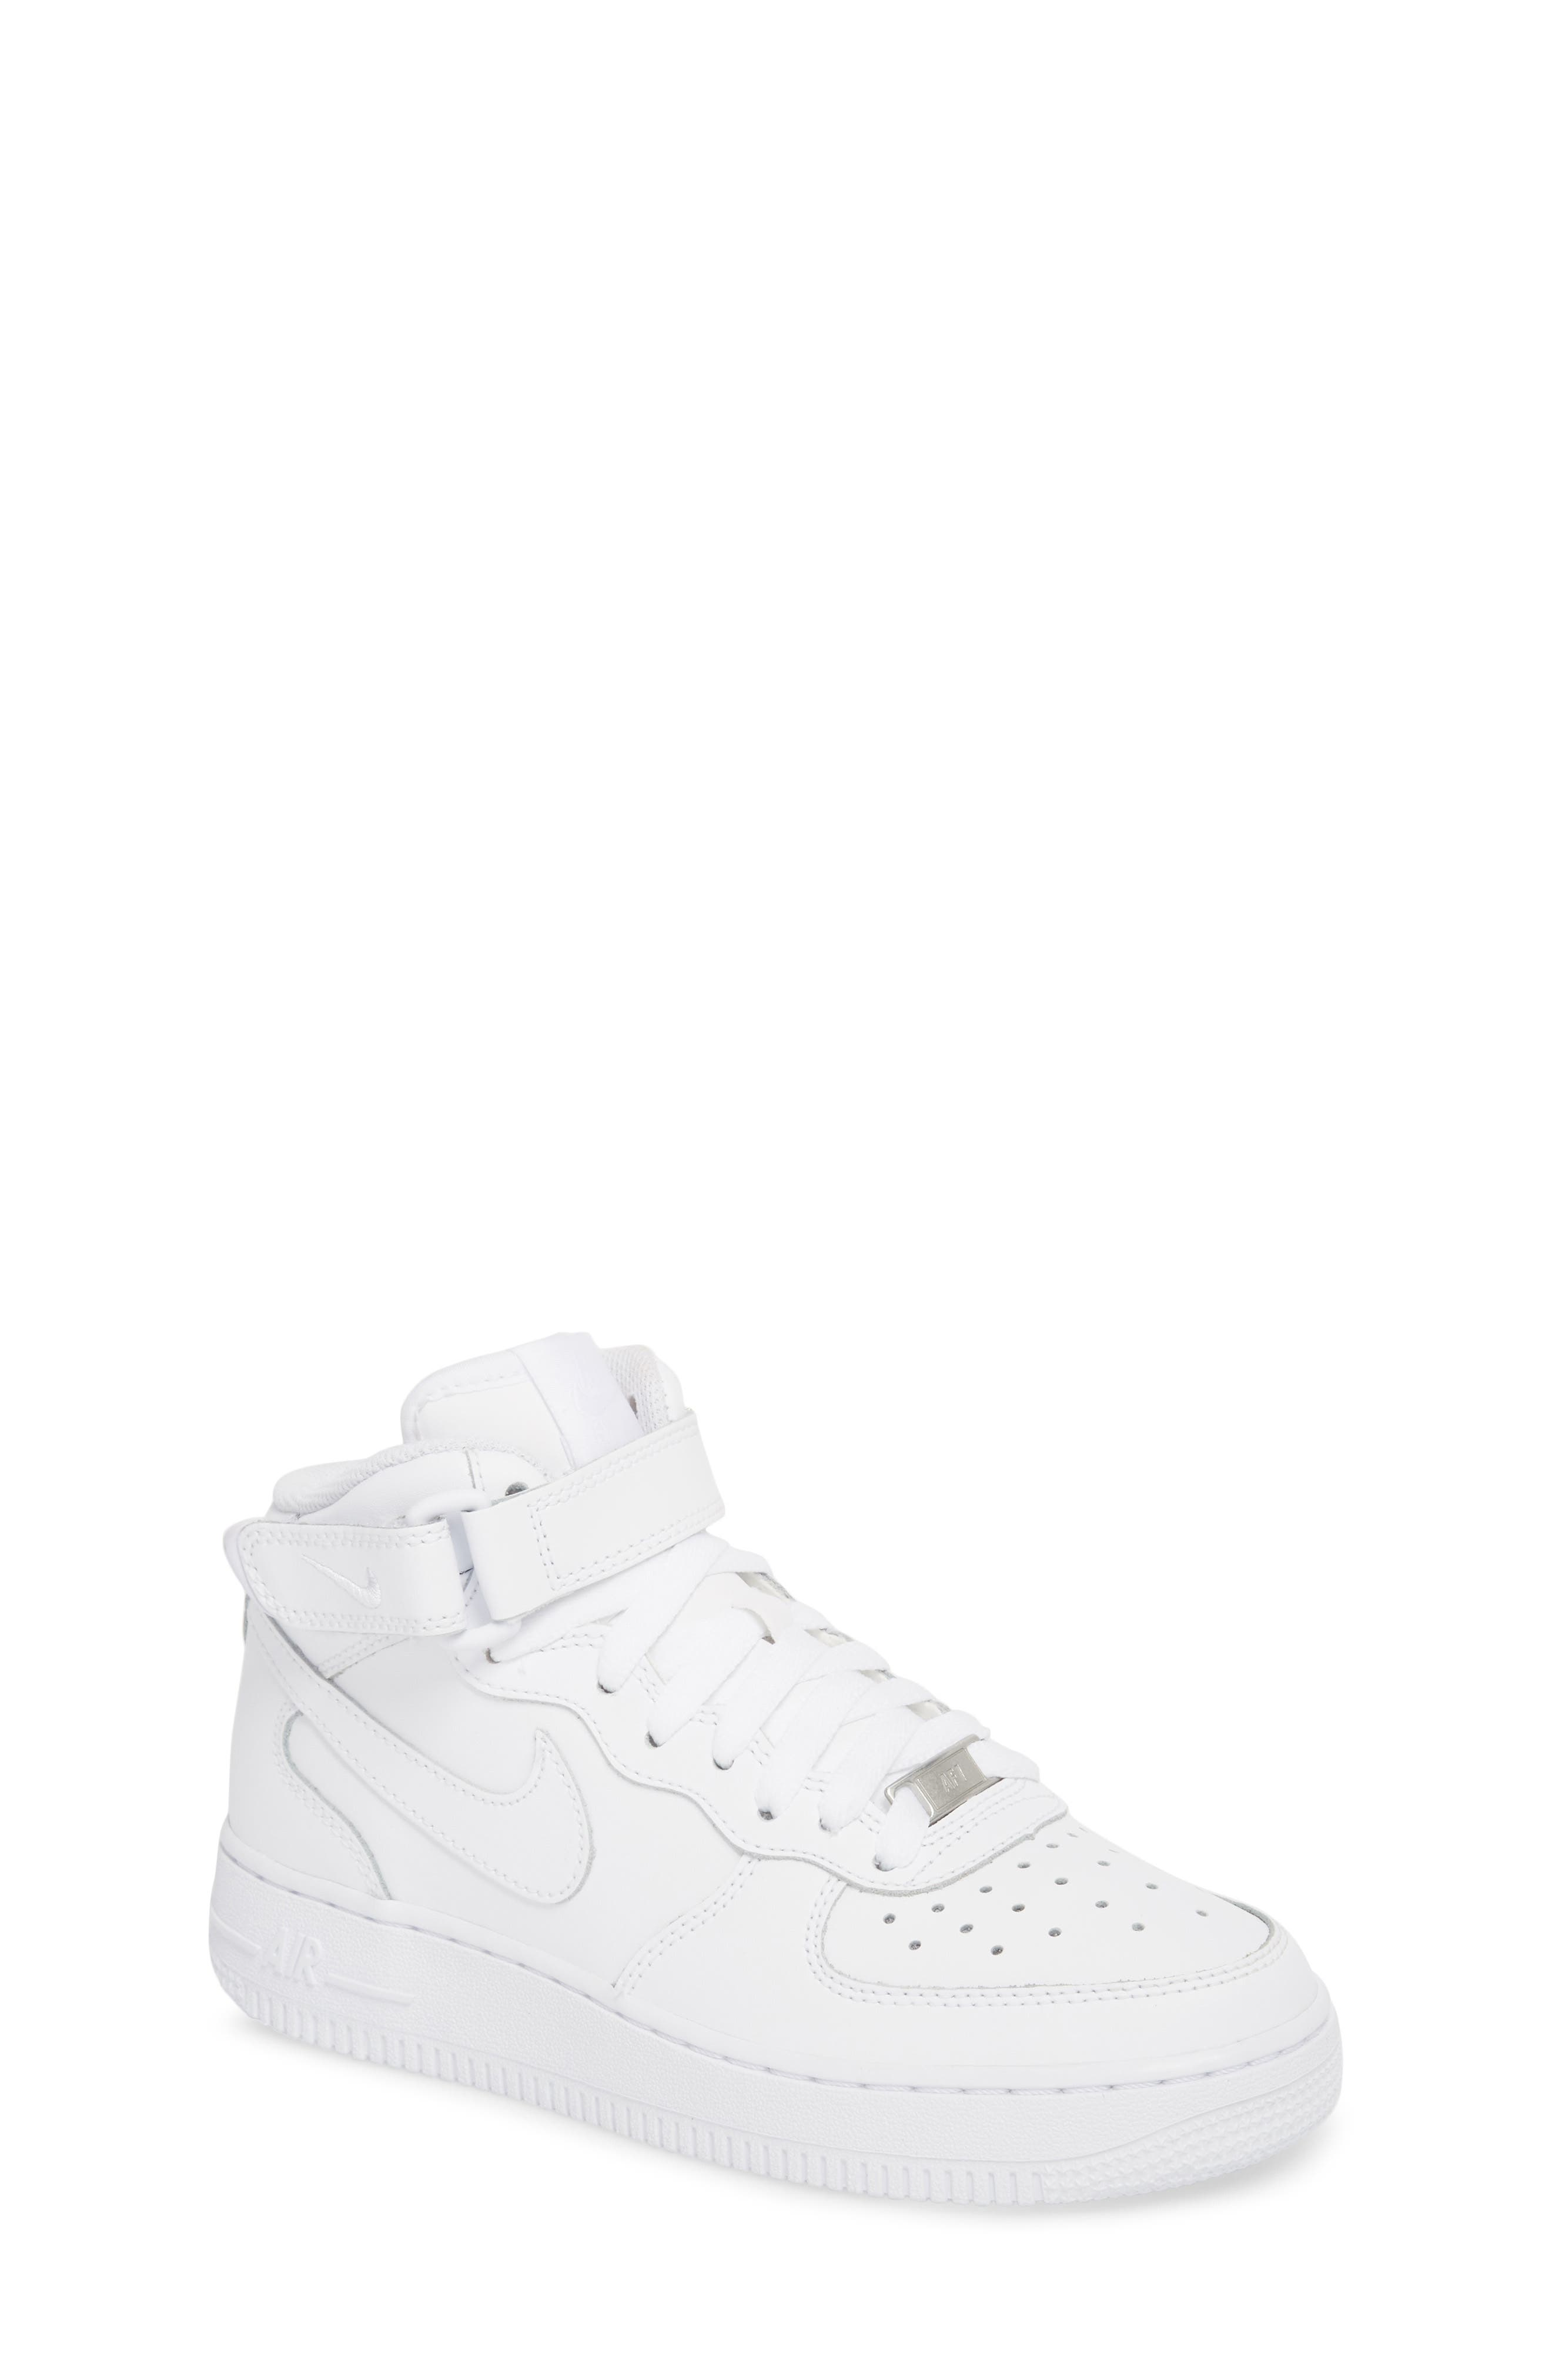 UPC 826218005794 Boy's Nike Air Force 1 Mid Top Sneaker